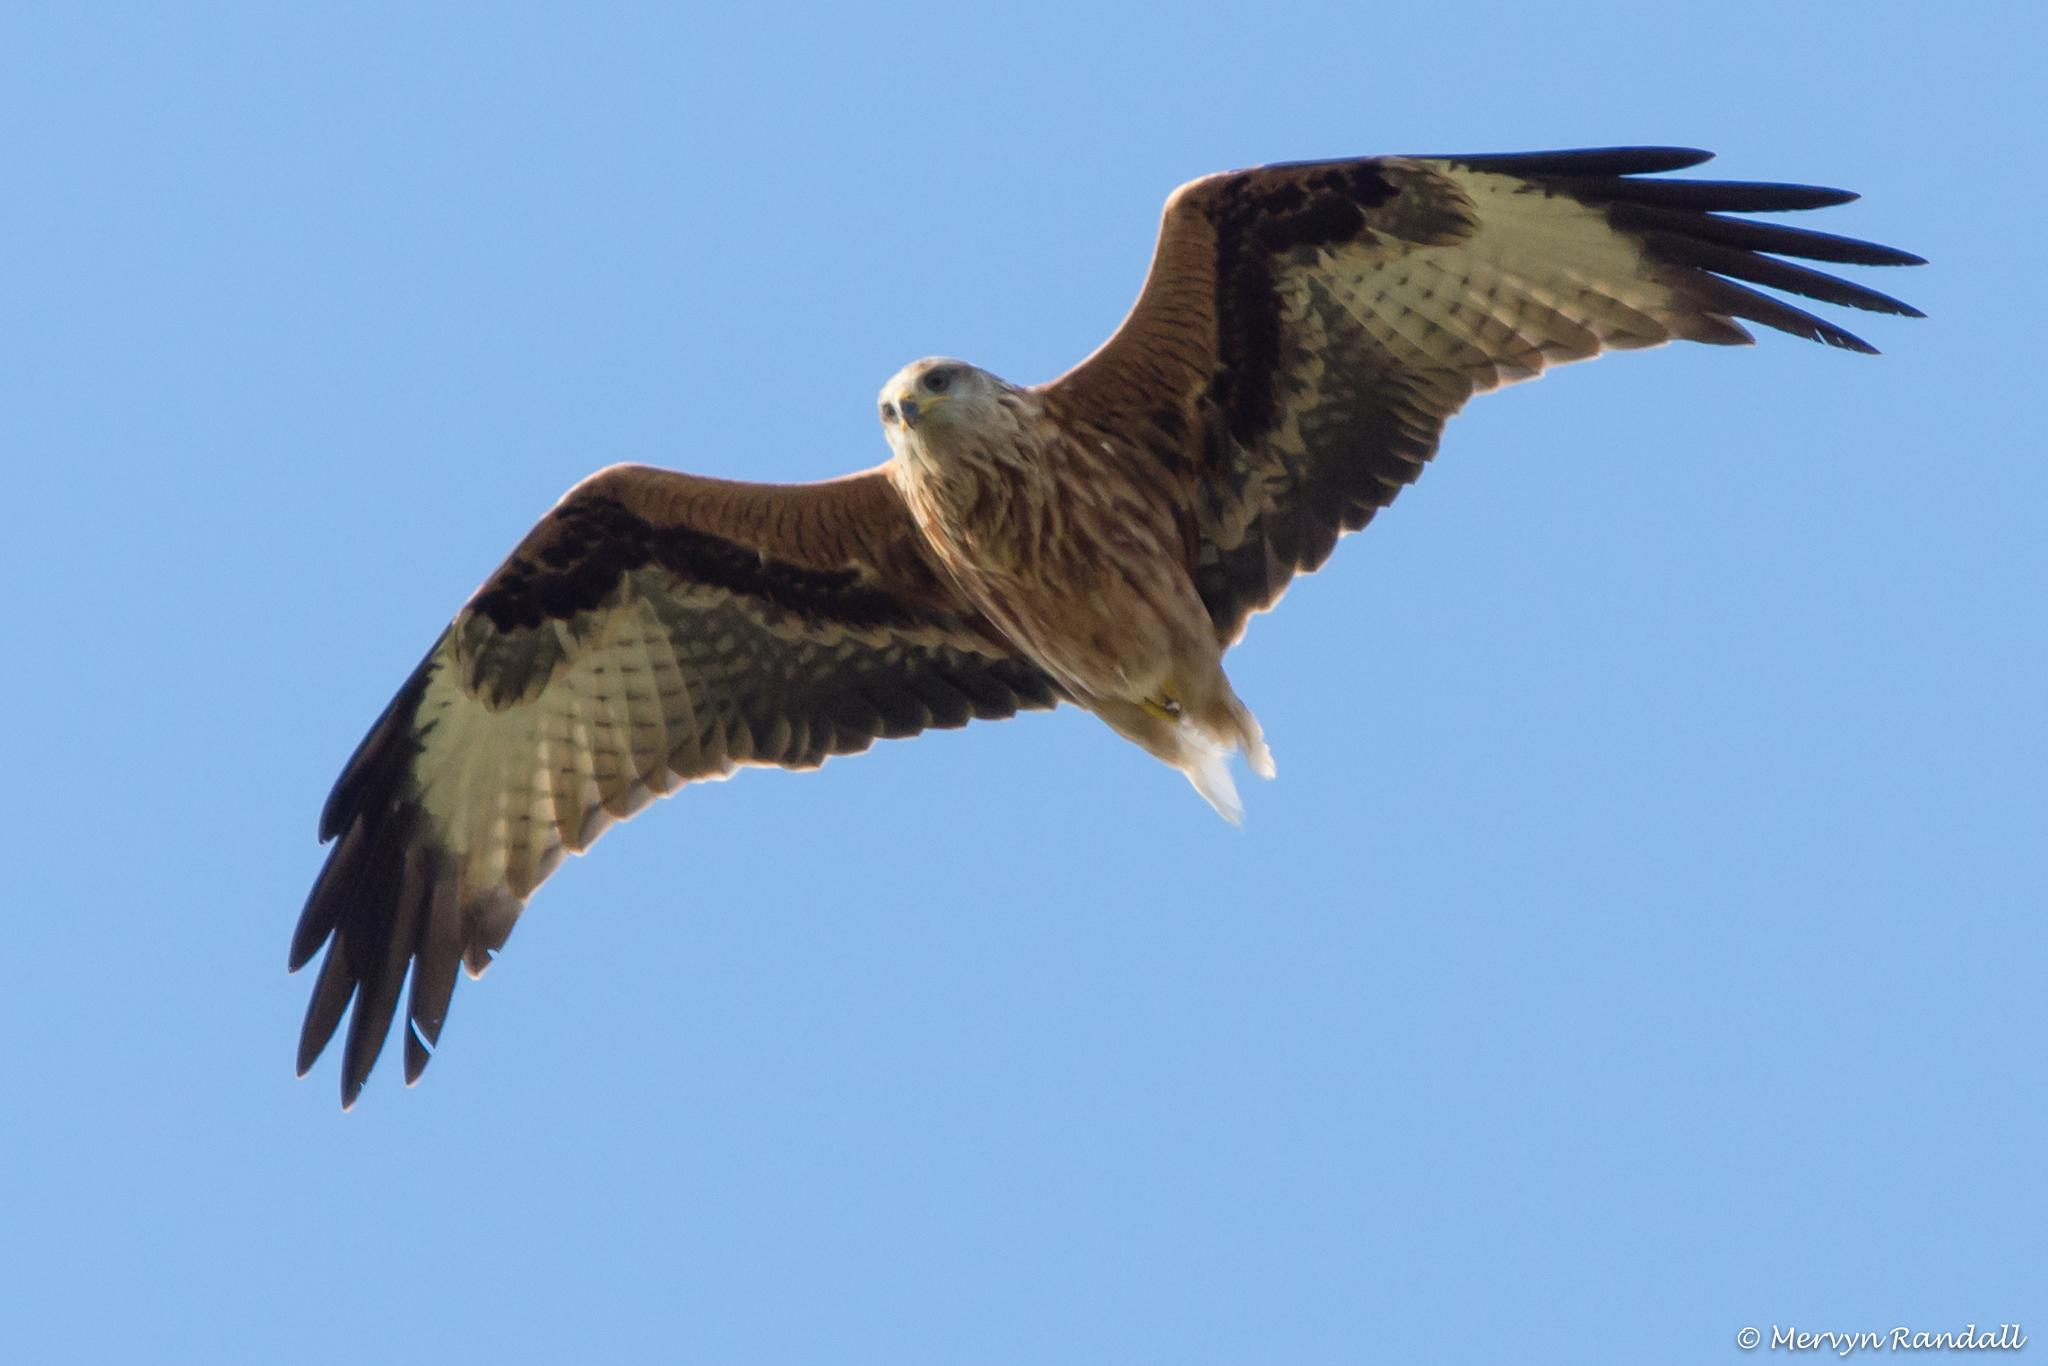 Red Kite with Tail Missing by Mervyn Randall